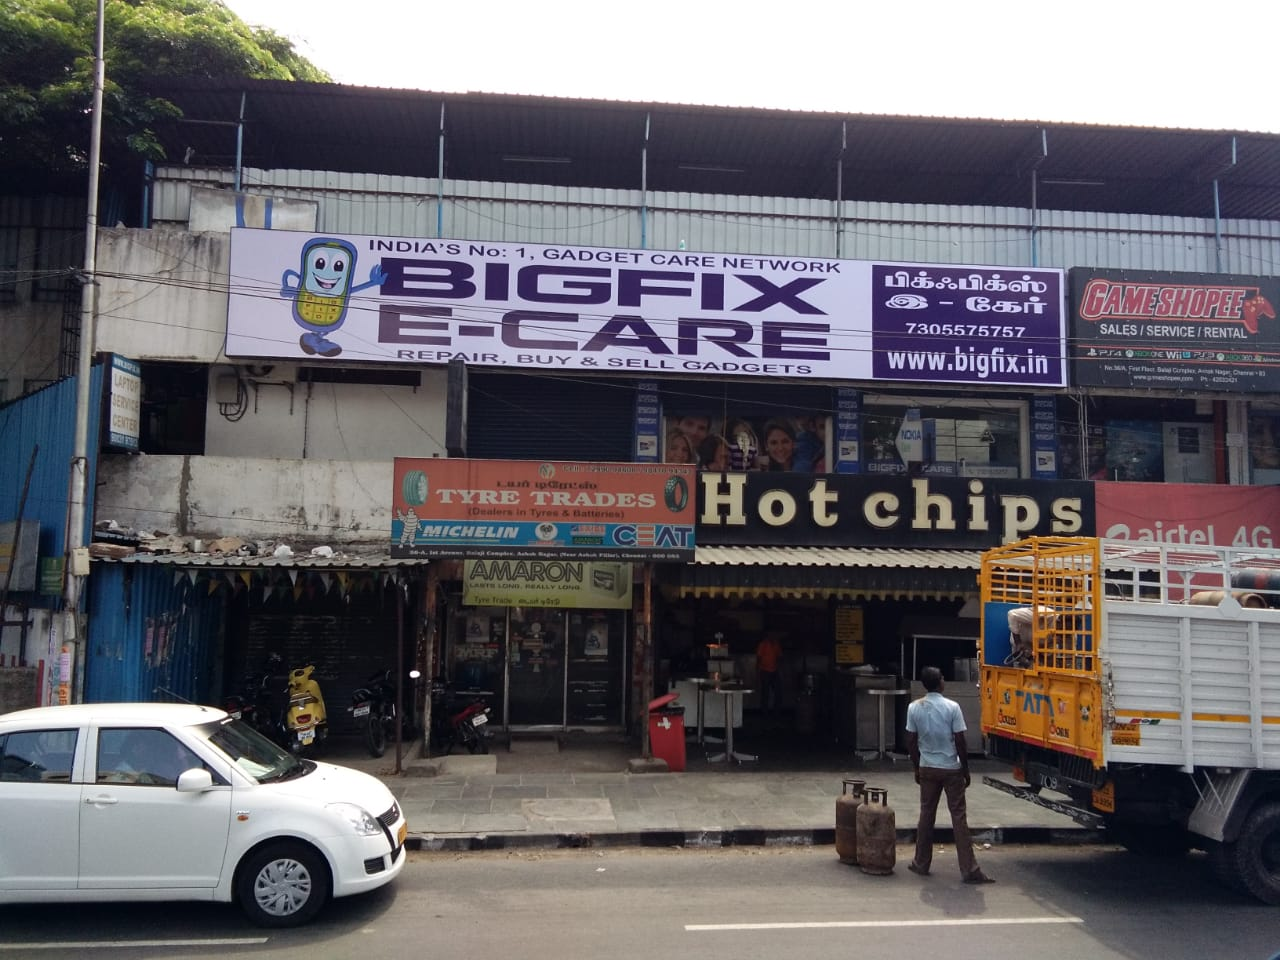 Bigfix Ecare - laptop service center franchise